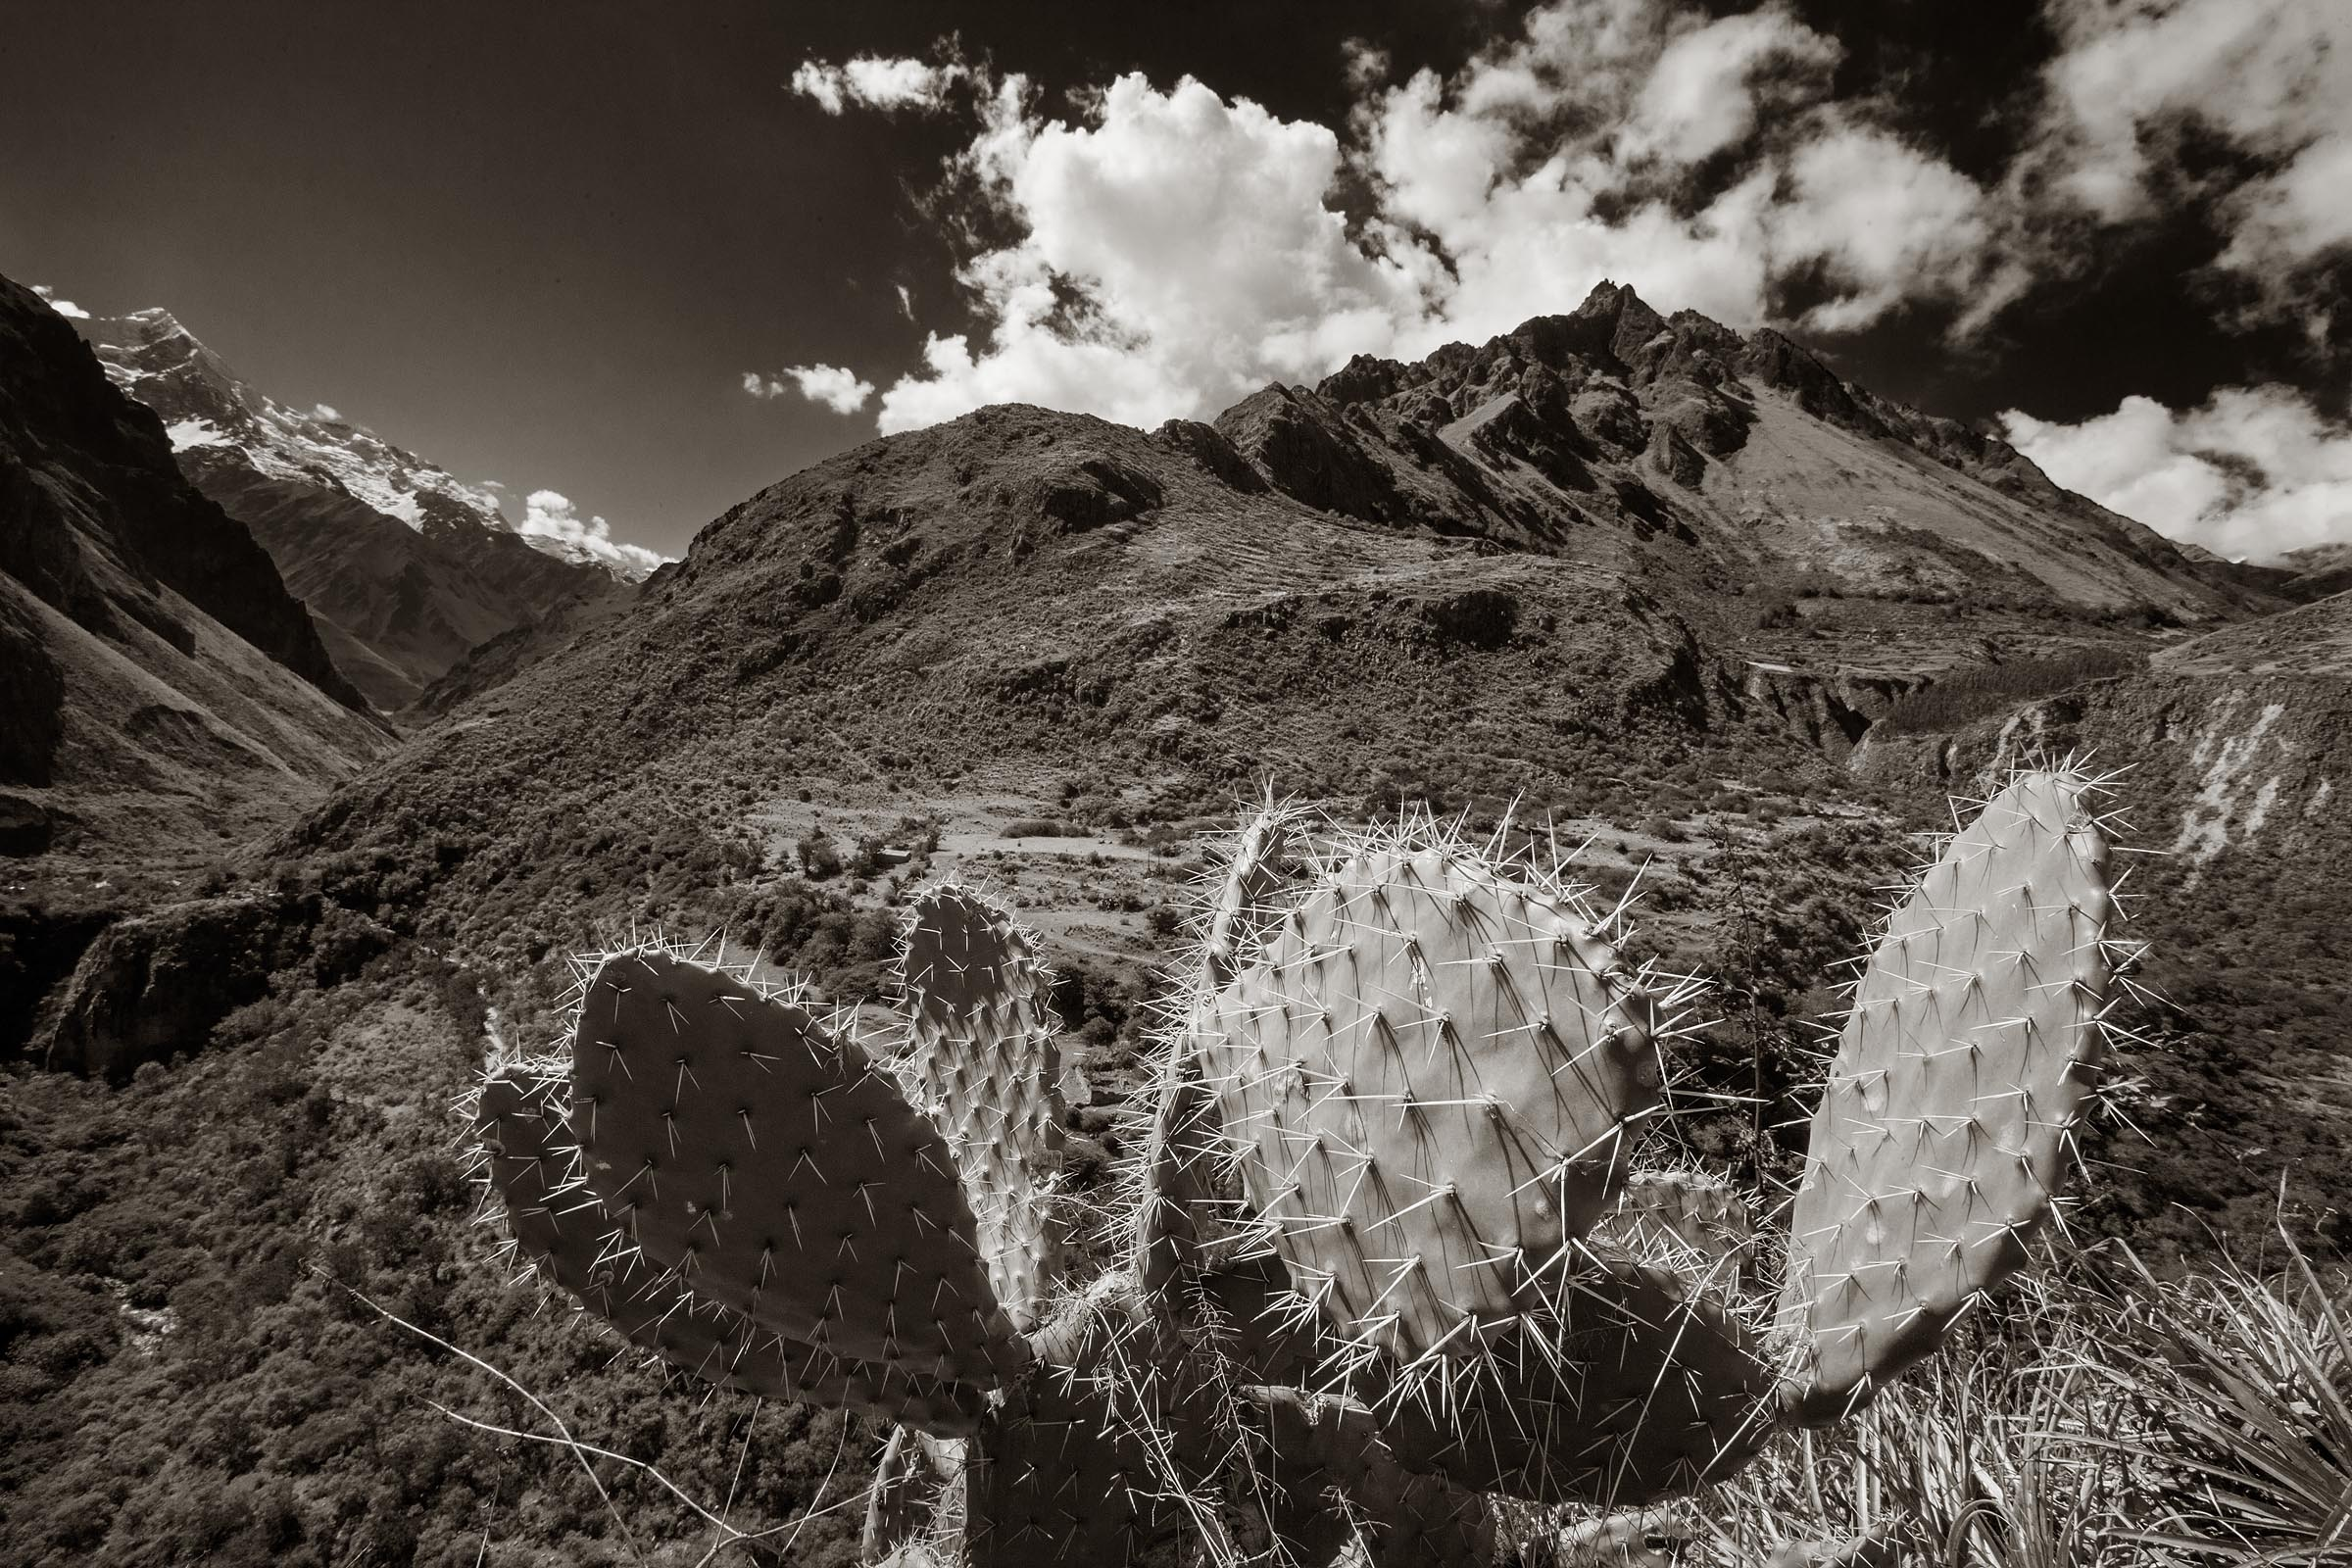 The terrain and climate along this 45 kilometer portion of the Inca Trail changes dramatically and quickly. At the lower elevations the climate is more arid providing the right environment for desert plants such as this cactus.